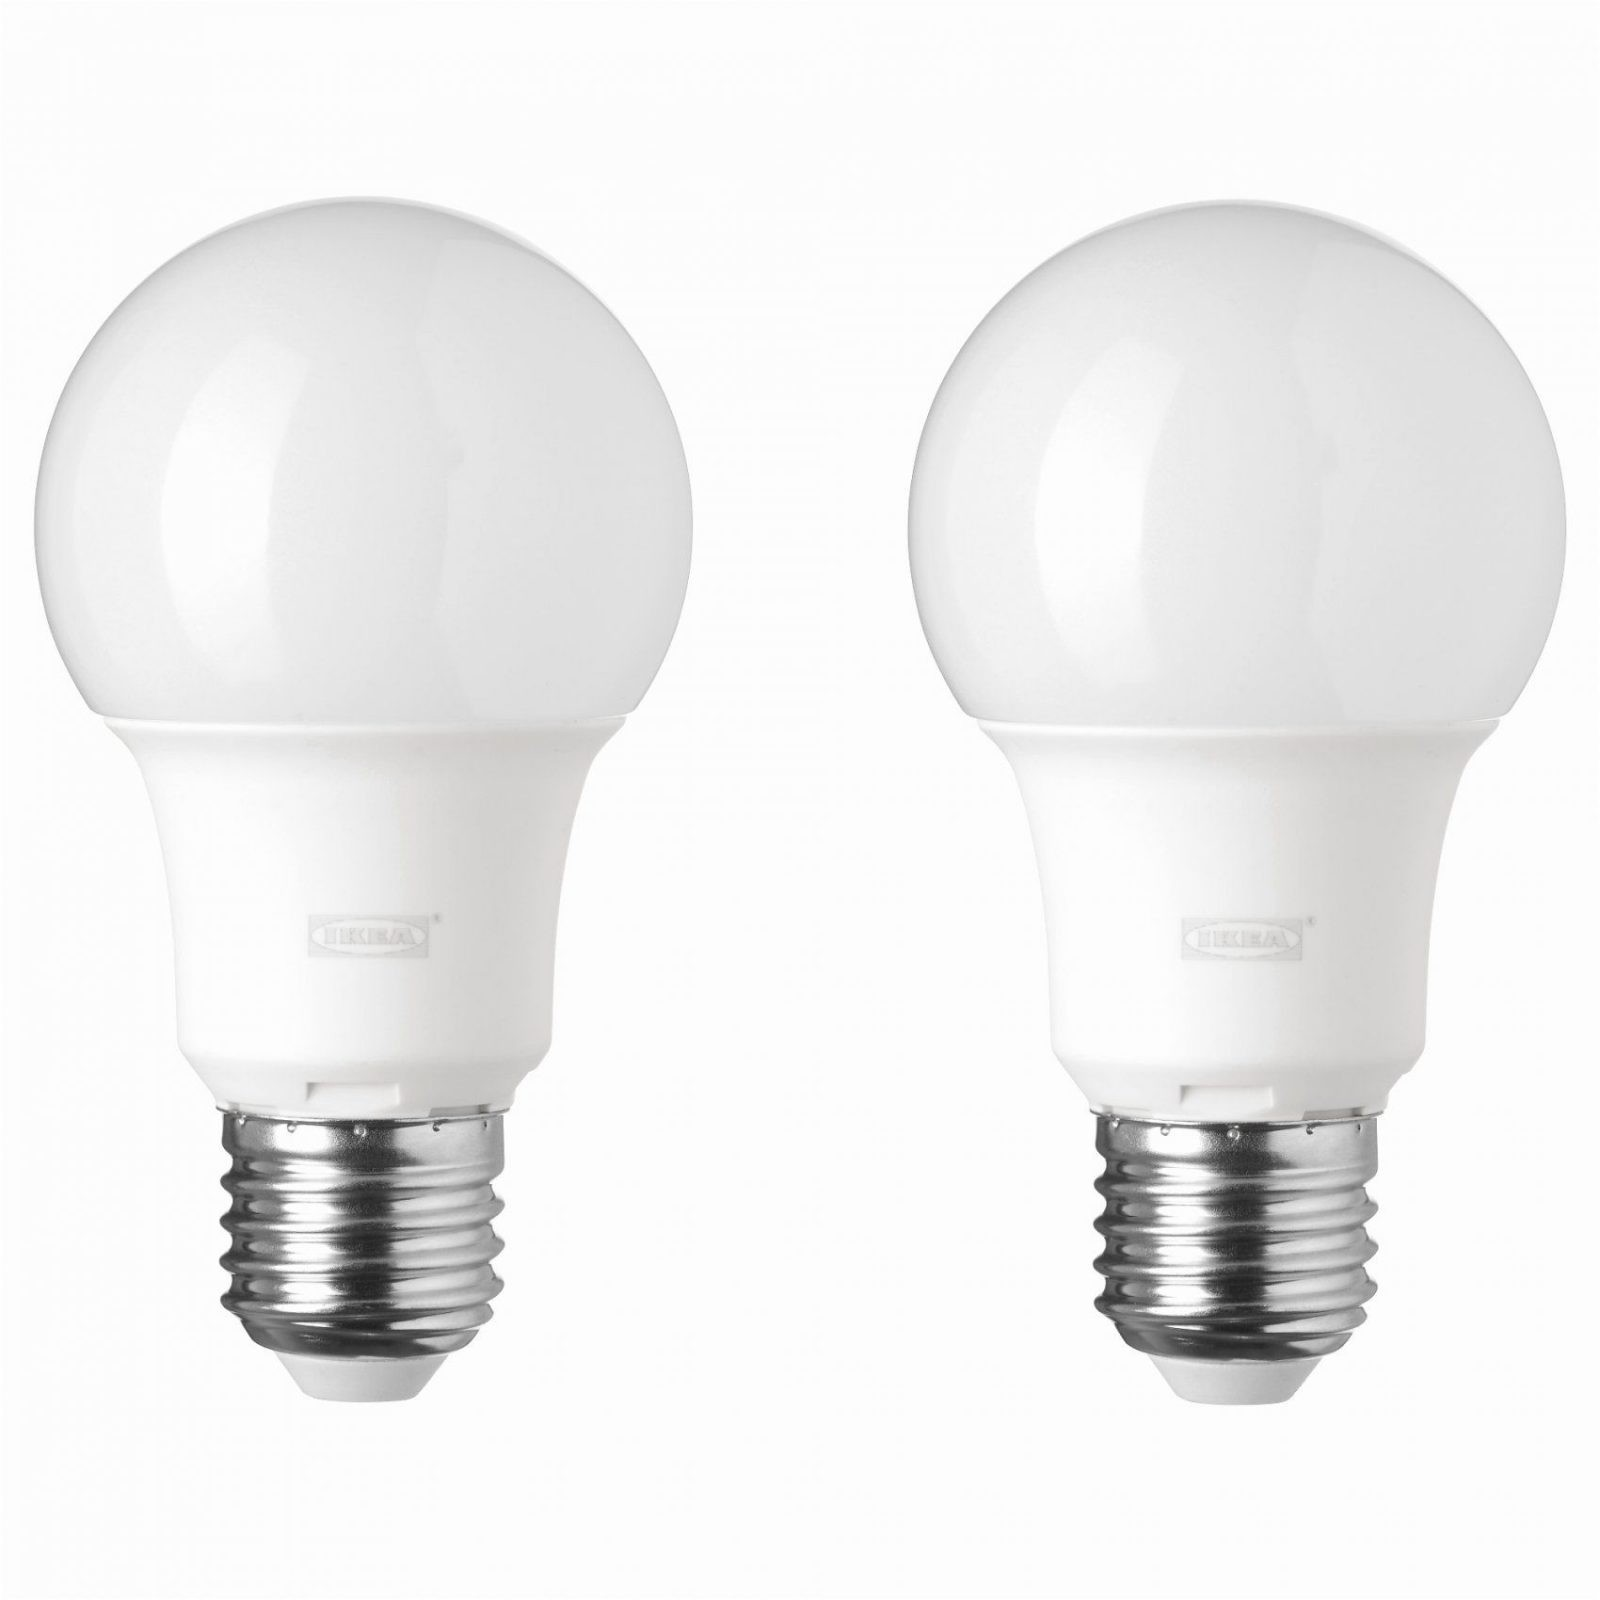 Philips Led Lampen Gu10 Ikea Led Lampen Dimbar